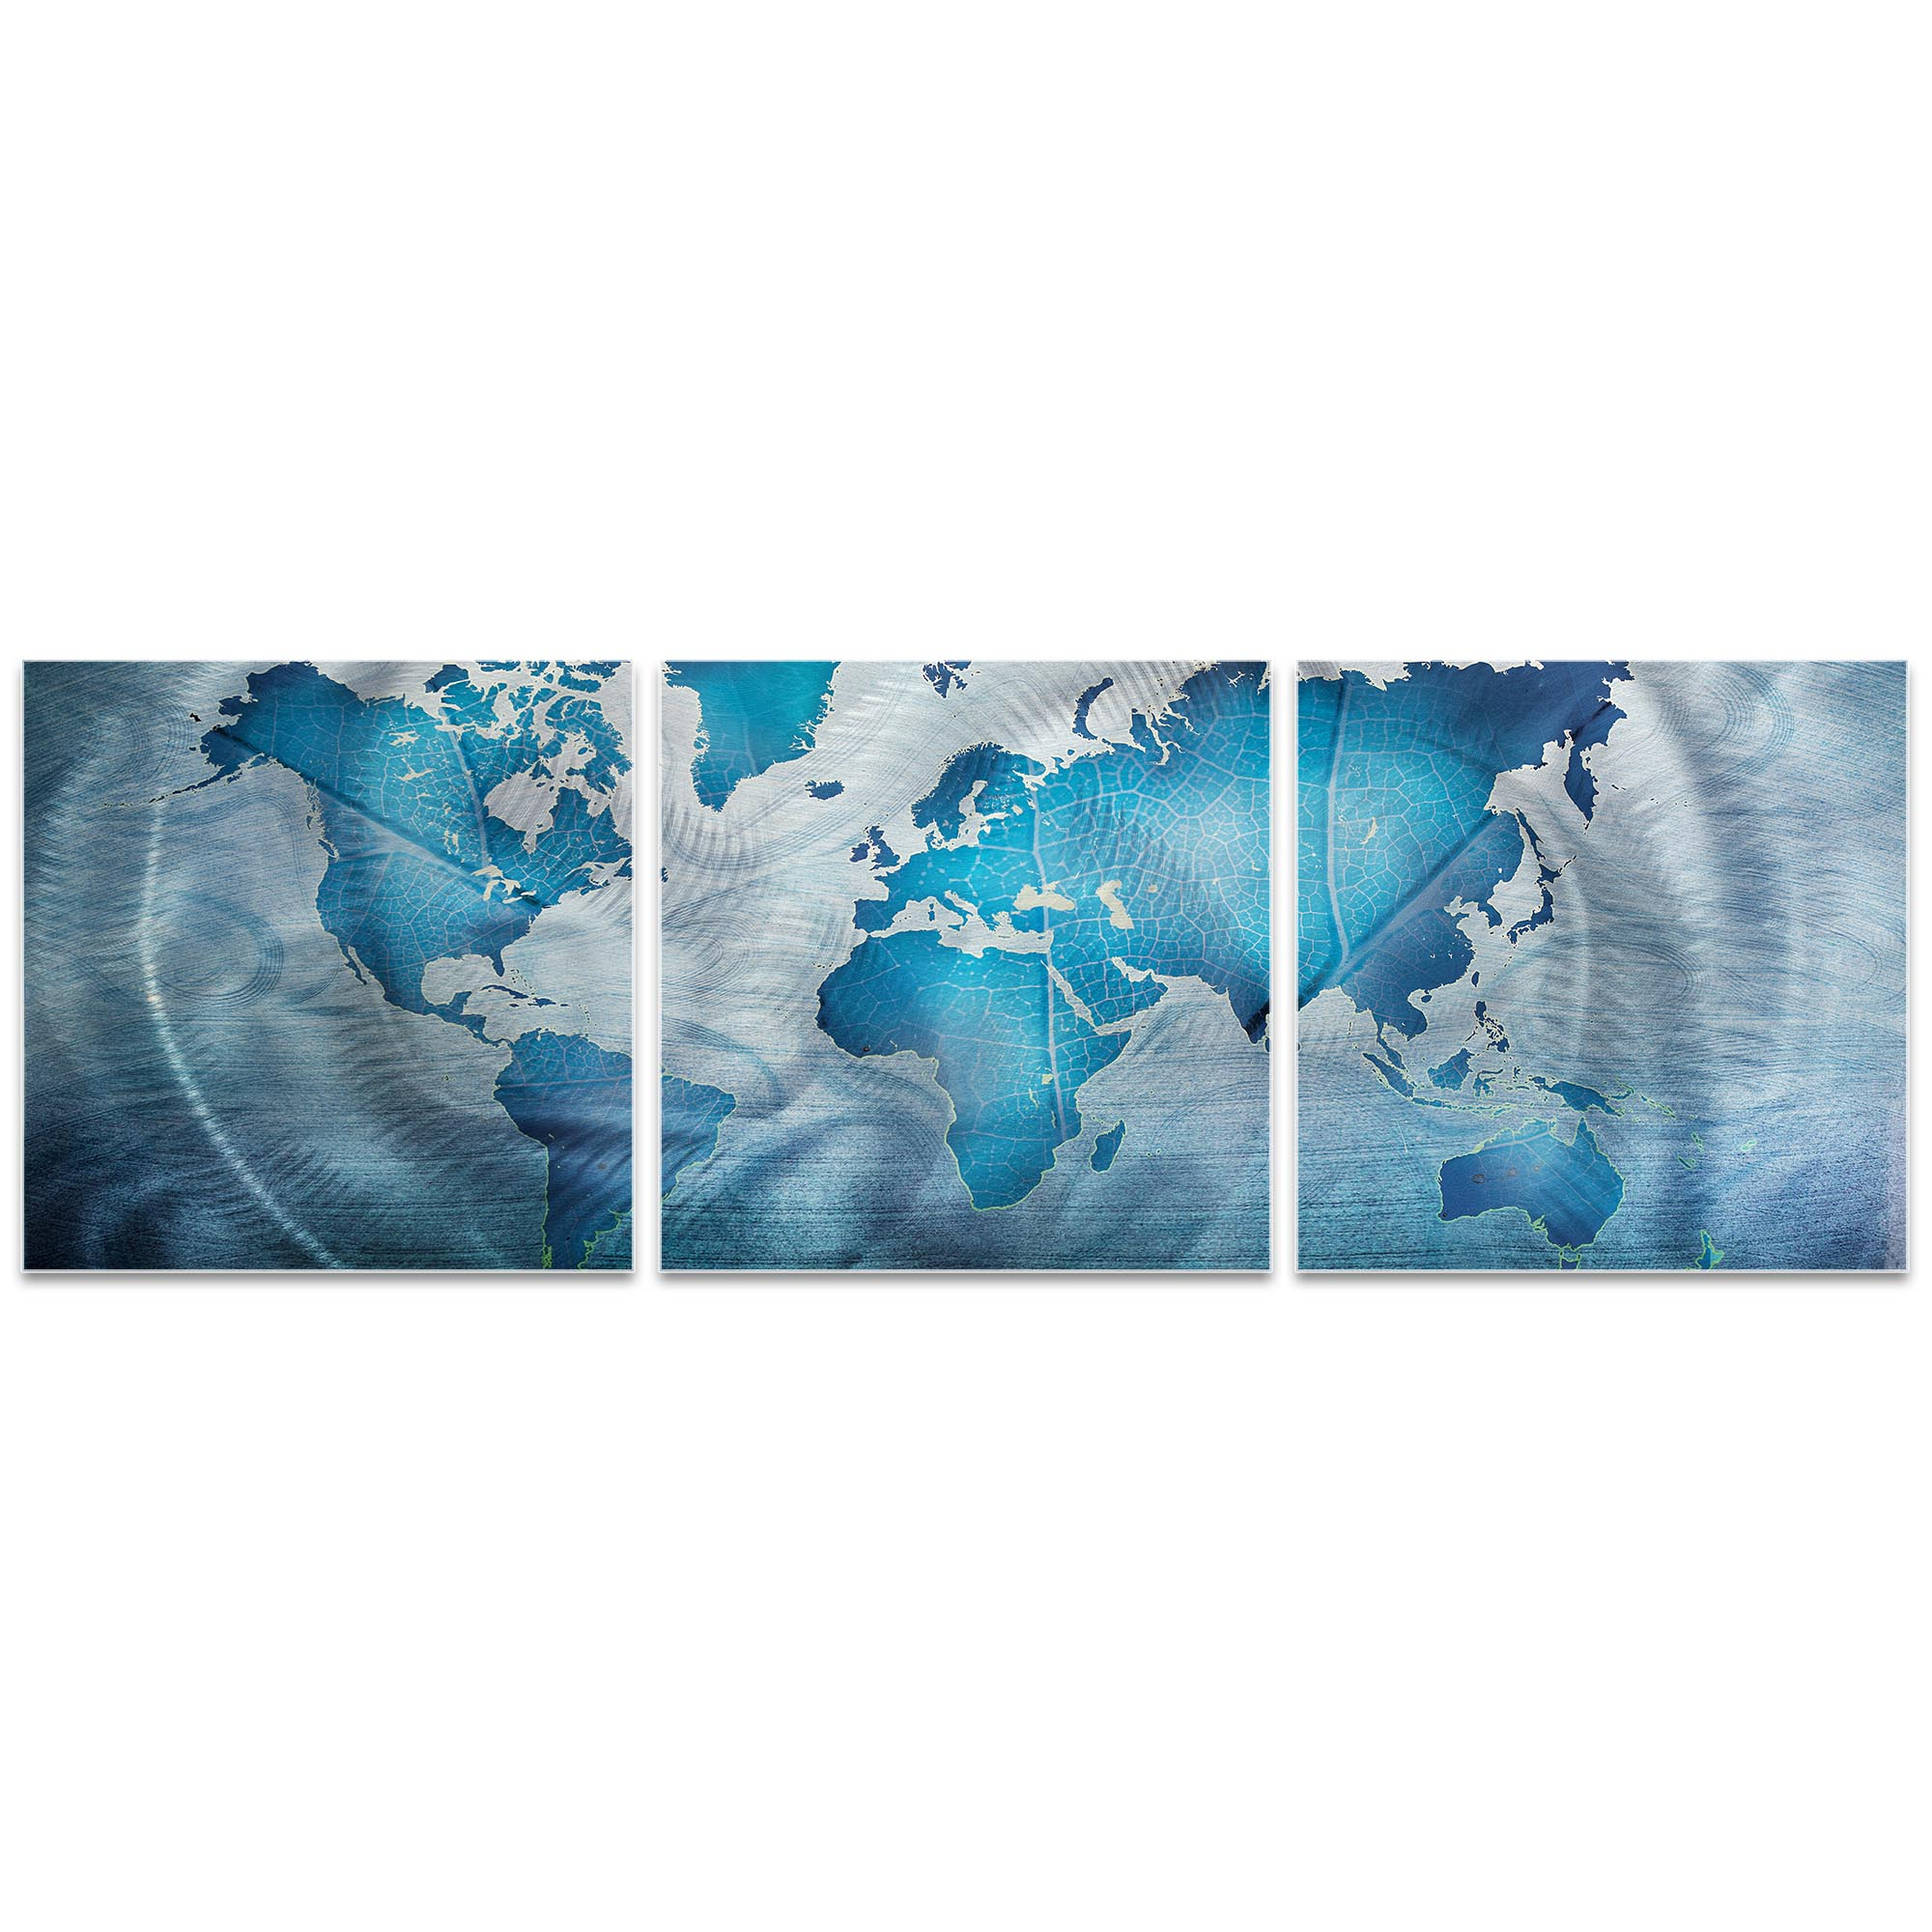 Land and Sea Triptych Large 70x22in. Metal or Acrylic Contemporary Decor - Image 2